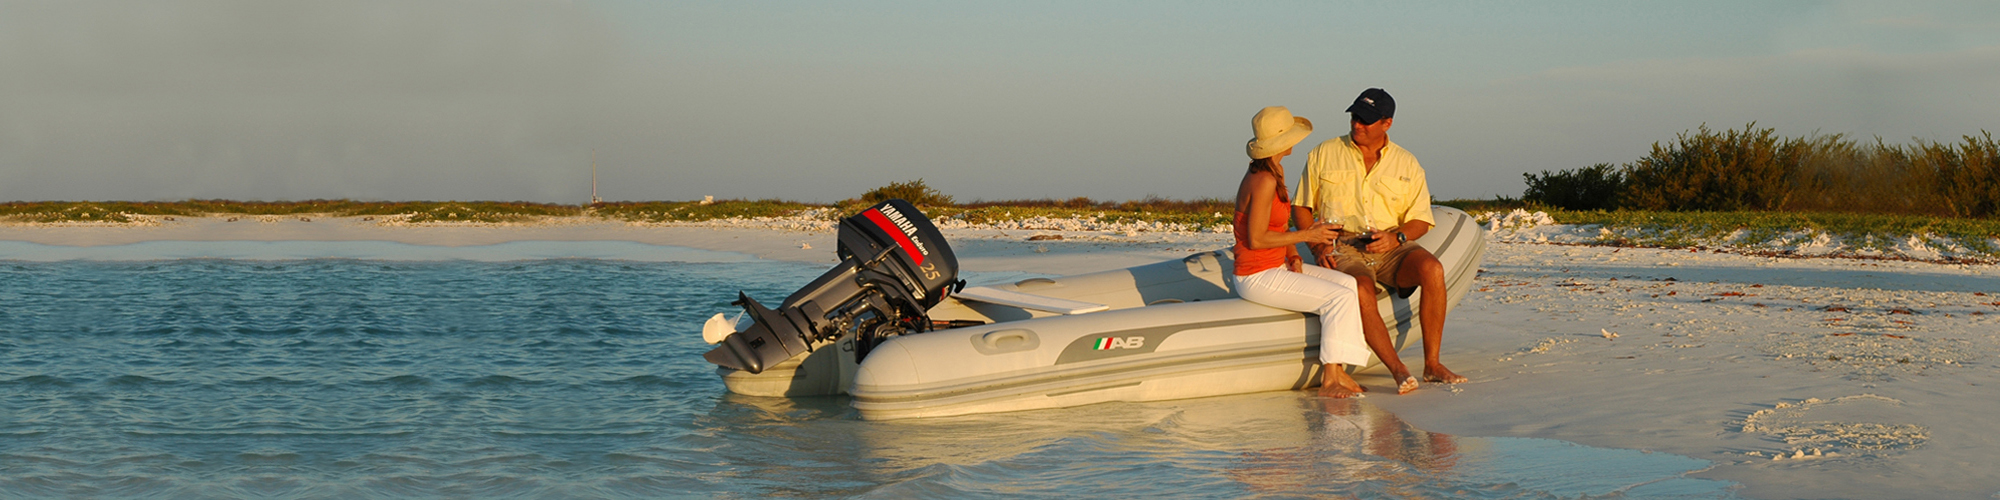 West Coast Inflatable Ribs | Perth, WA official distributor